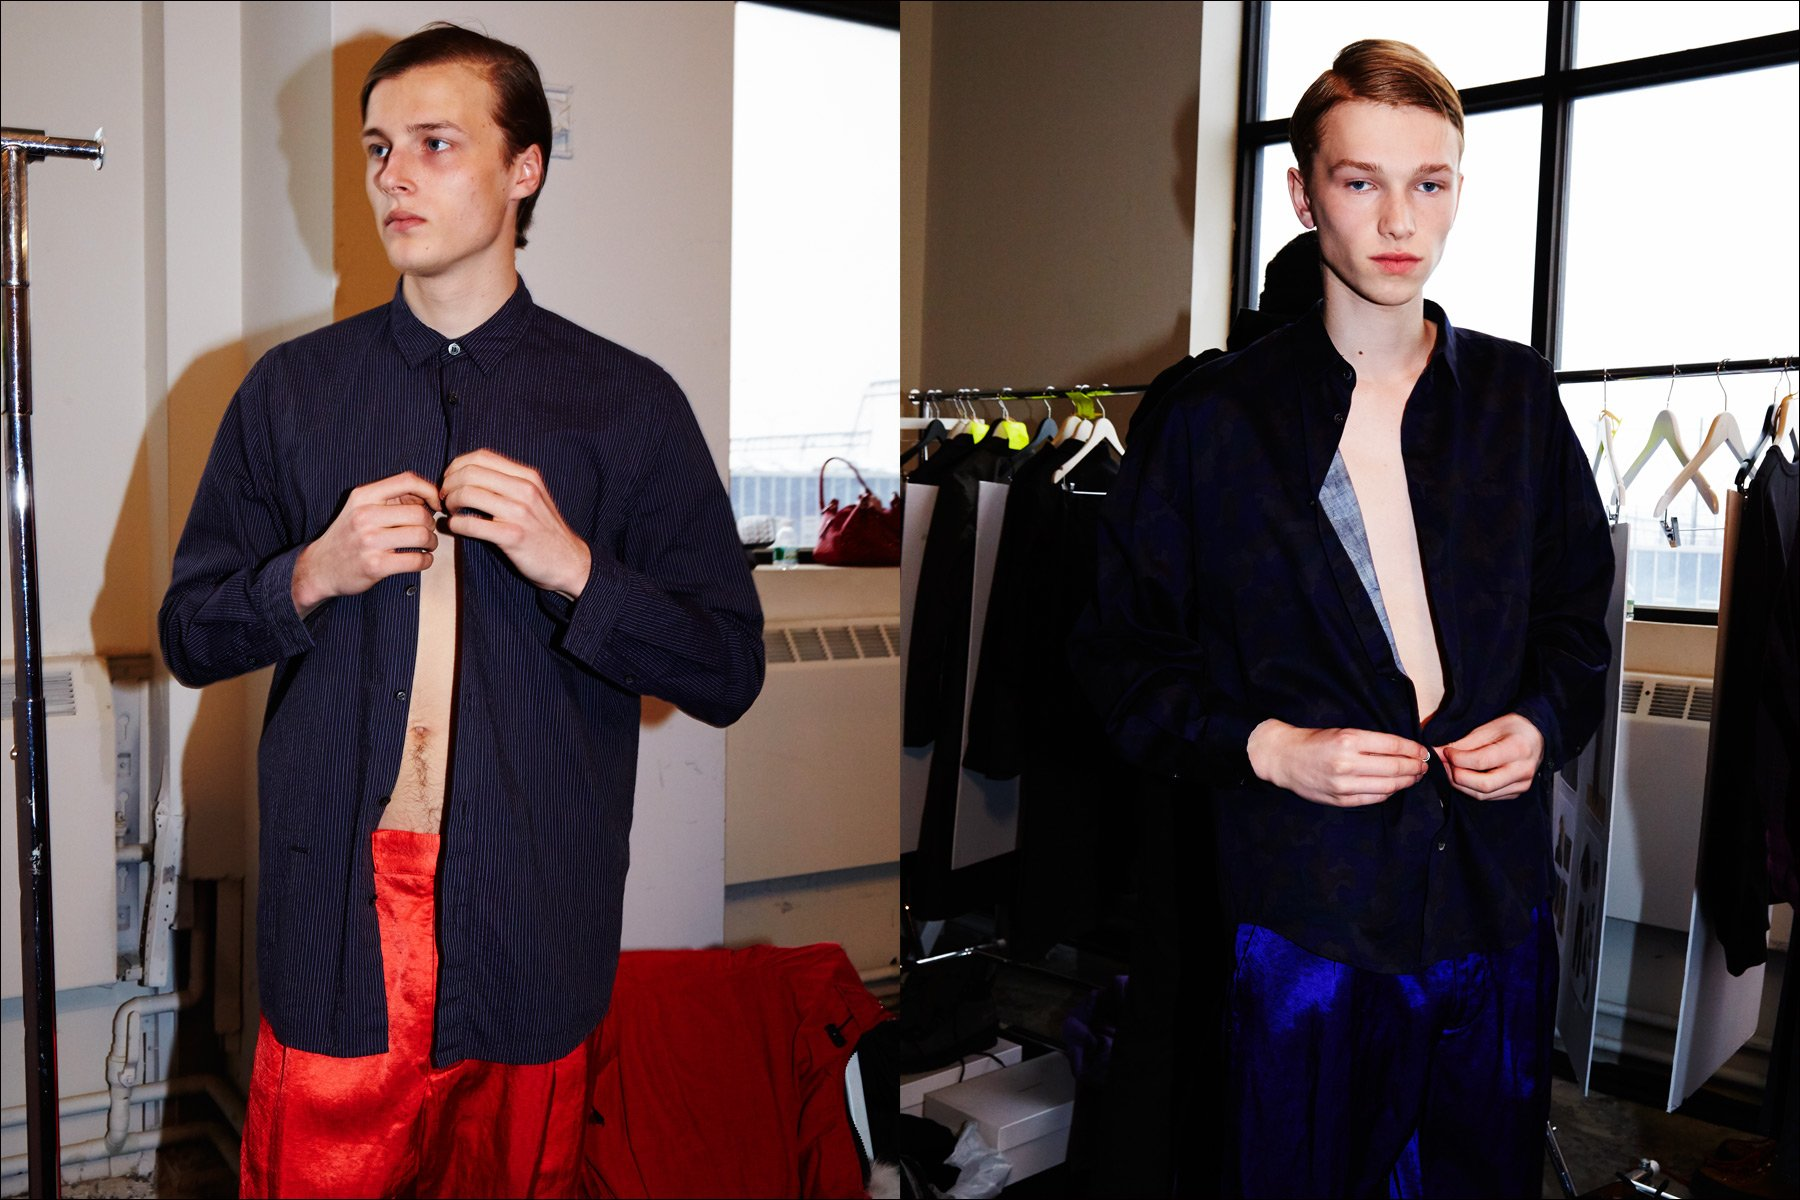 Models Hugh Laughton-Scott & Oscar Scott photographed dressing backstage at Robert Geller Autumn/Winter 2017 menswear collection. Photography by Alexander Thompson for Ponyboy magazine NY.